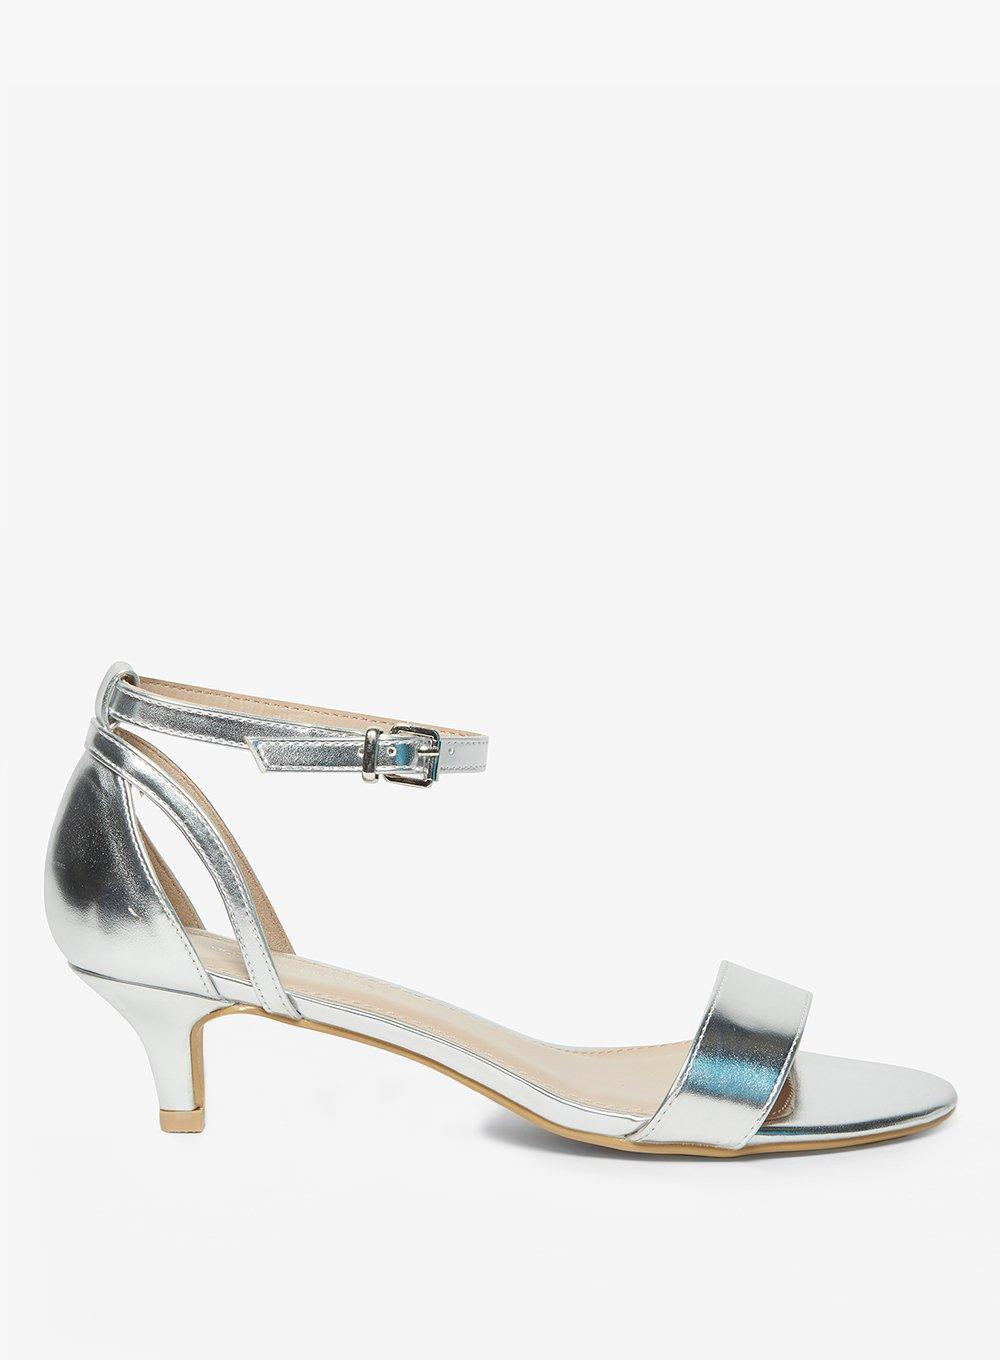 21c31a94e94 Lyst - Dorothy Perkins Silver  sunrise  Heeled Sandals in Metallic